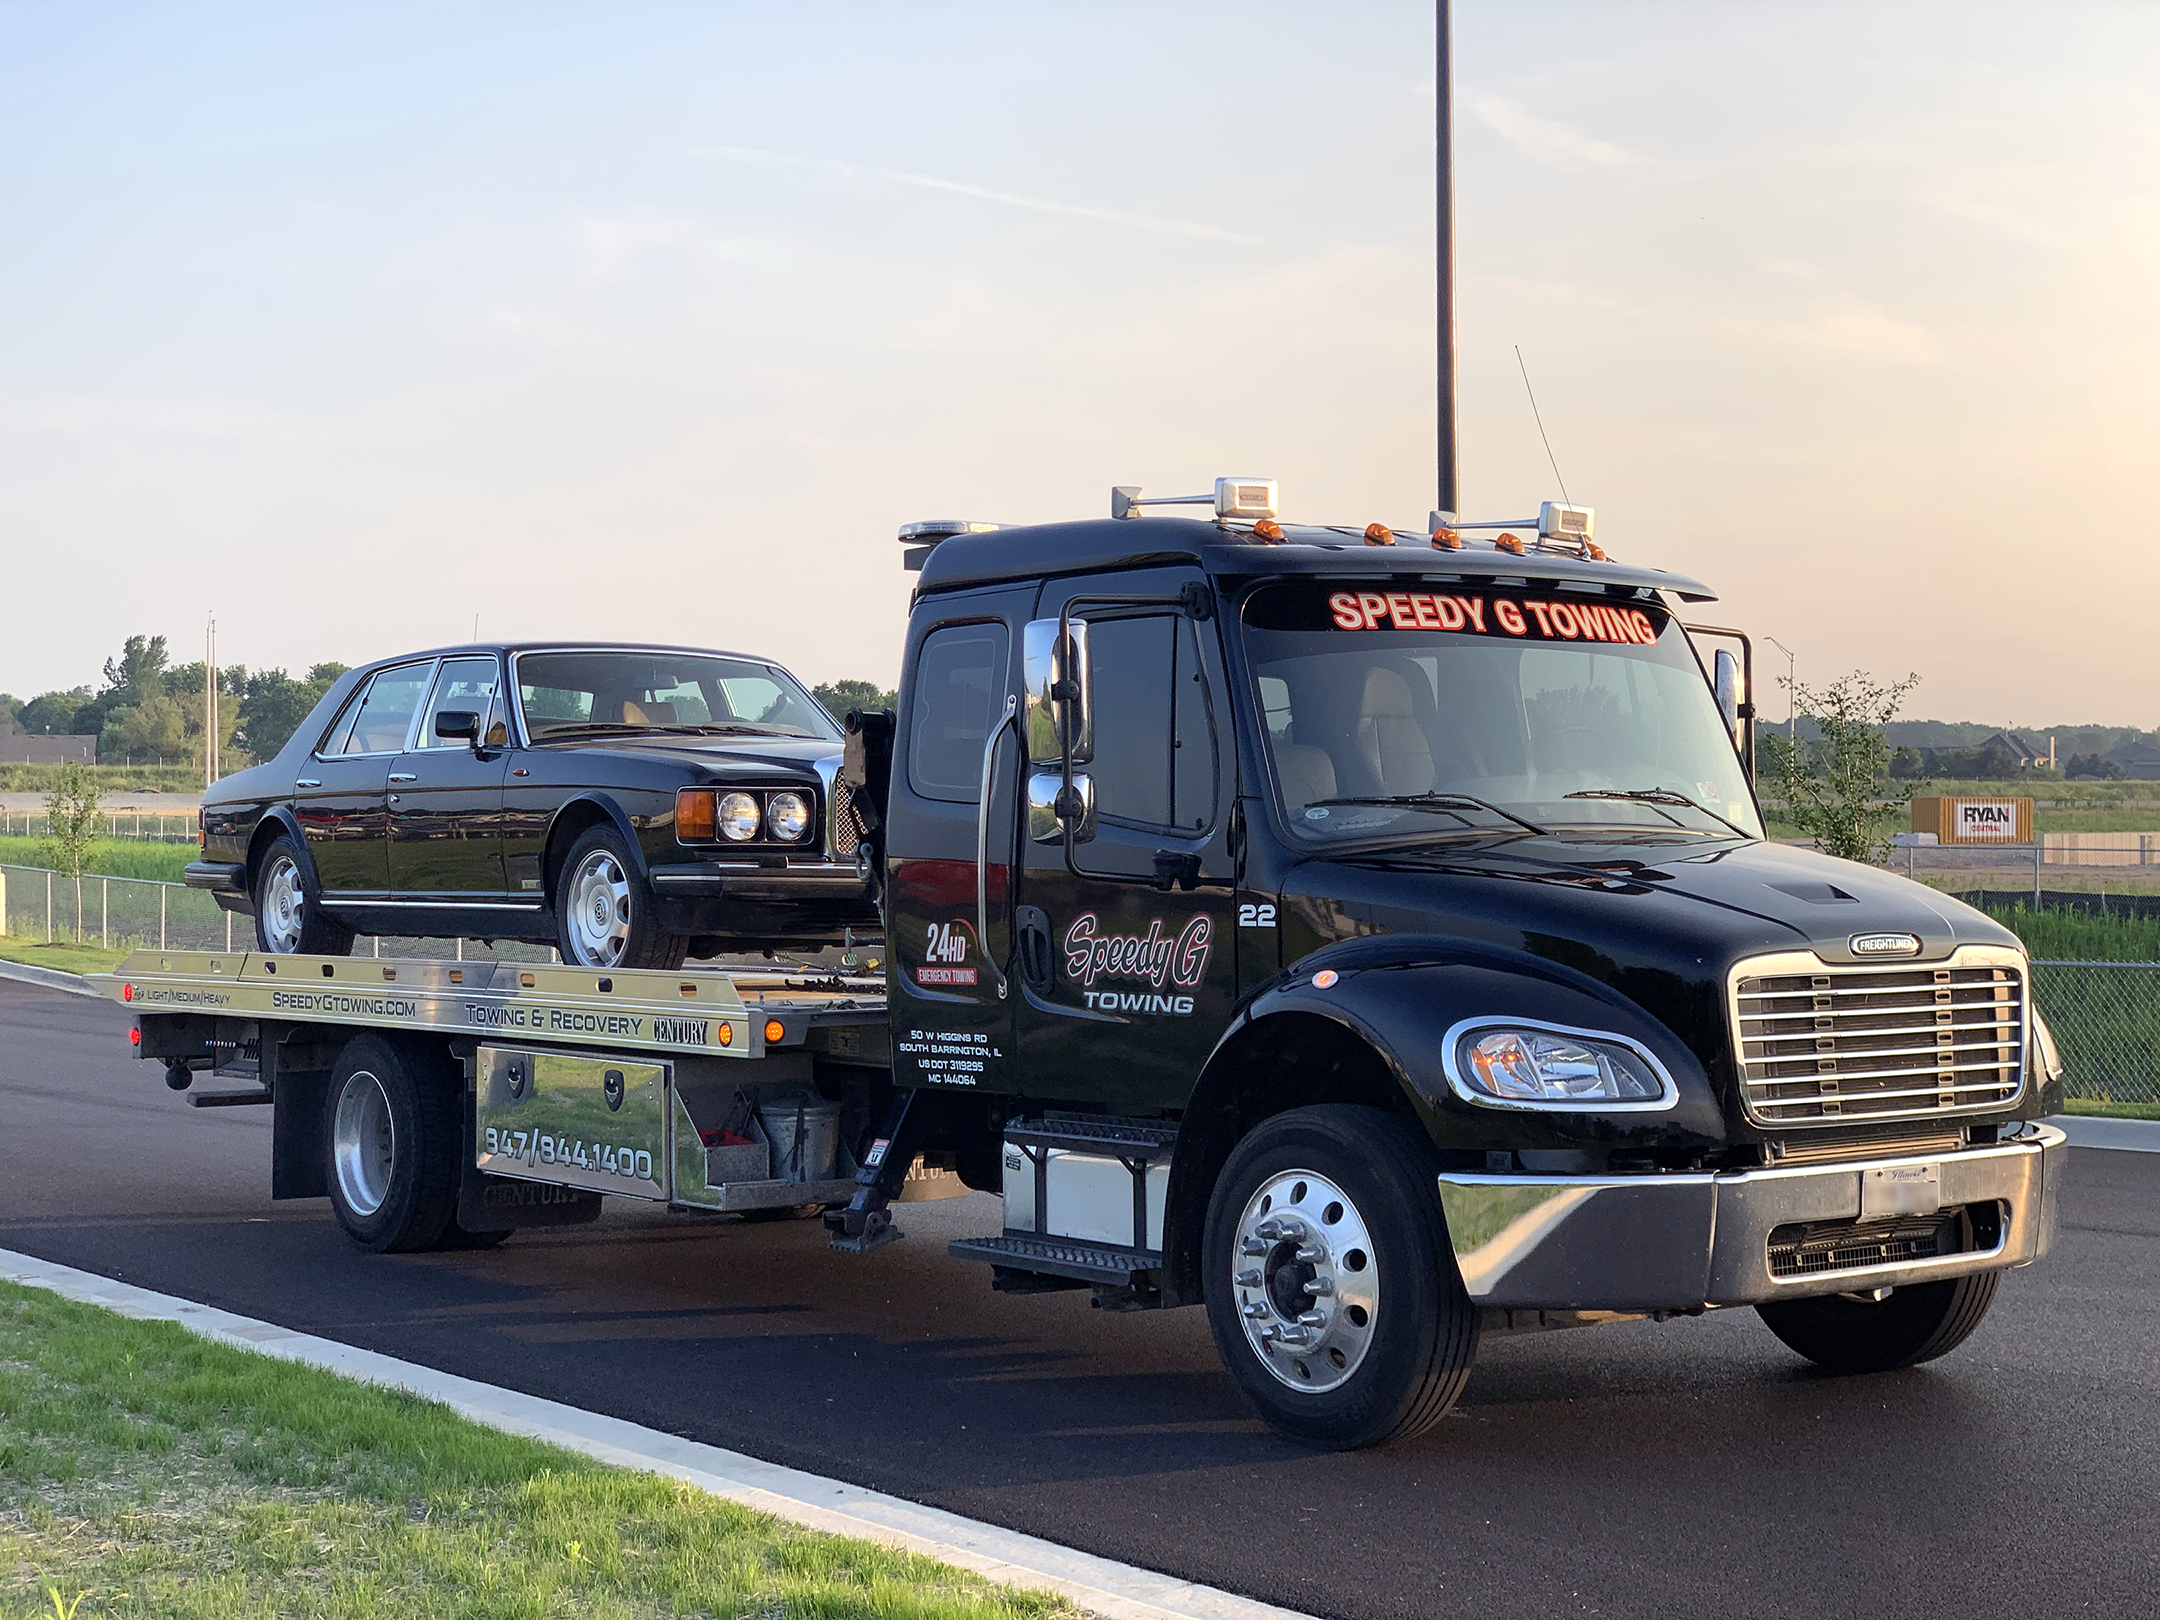 Algonquin Il Towing Near You From 65 24 7 Towing Service Tow Truck Company